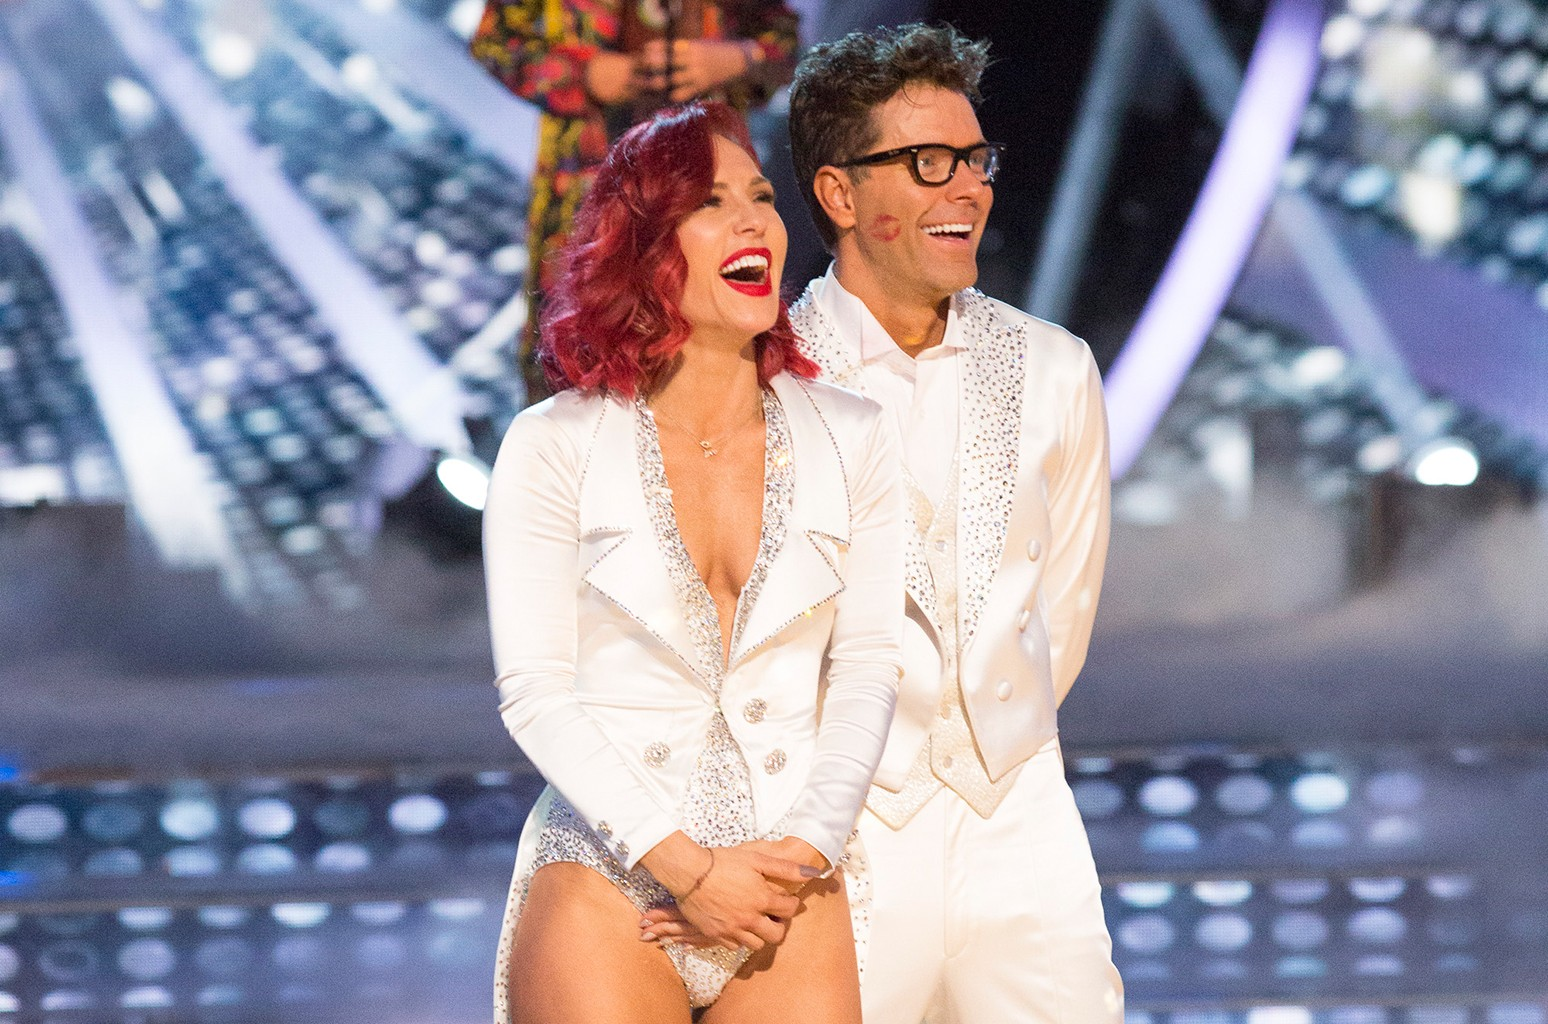 Sharna Burgess and Bobby Bones on Dancing with the Stars.